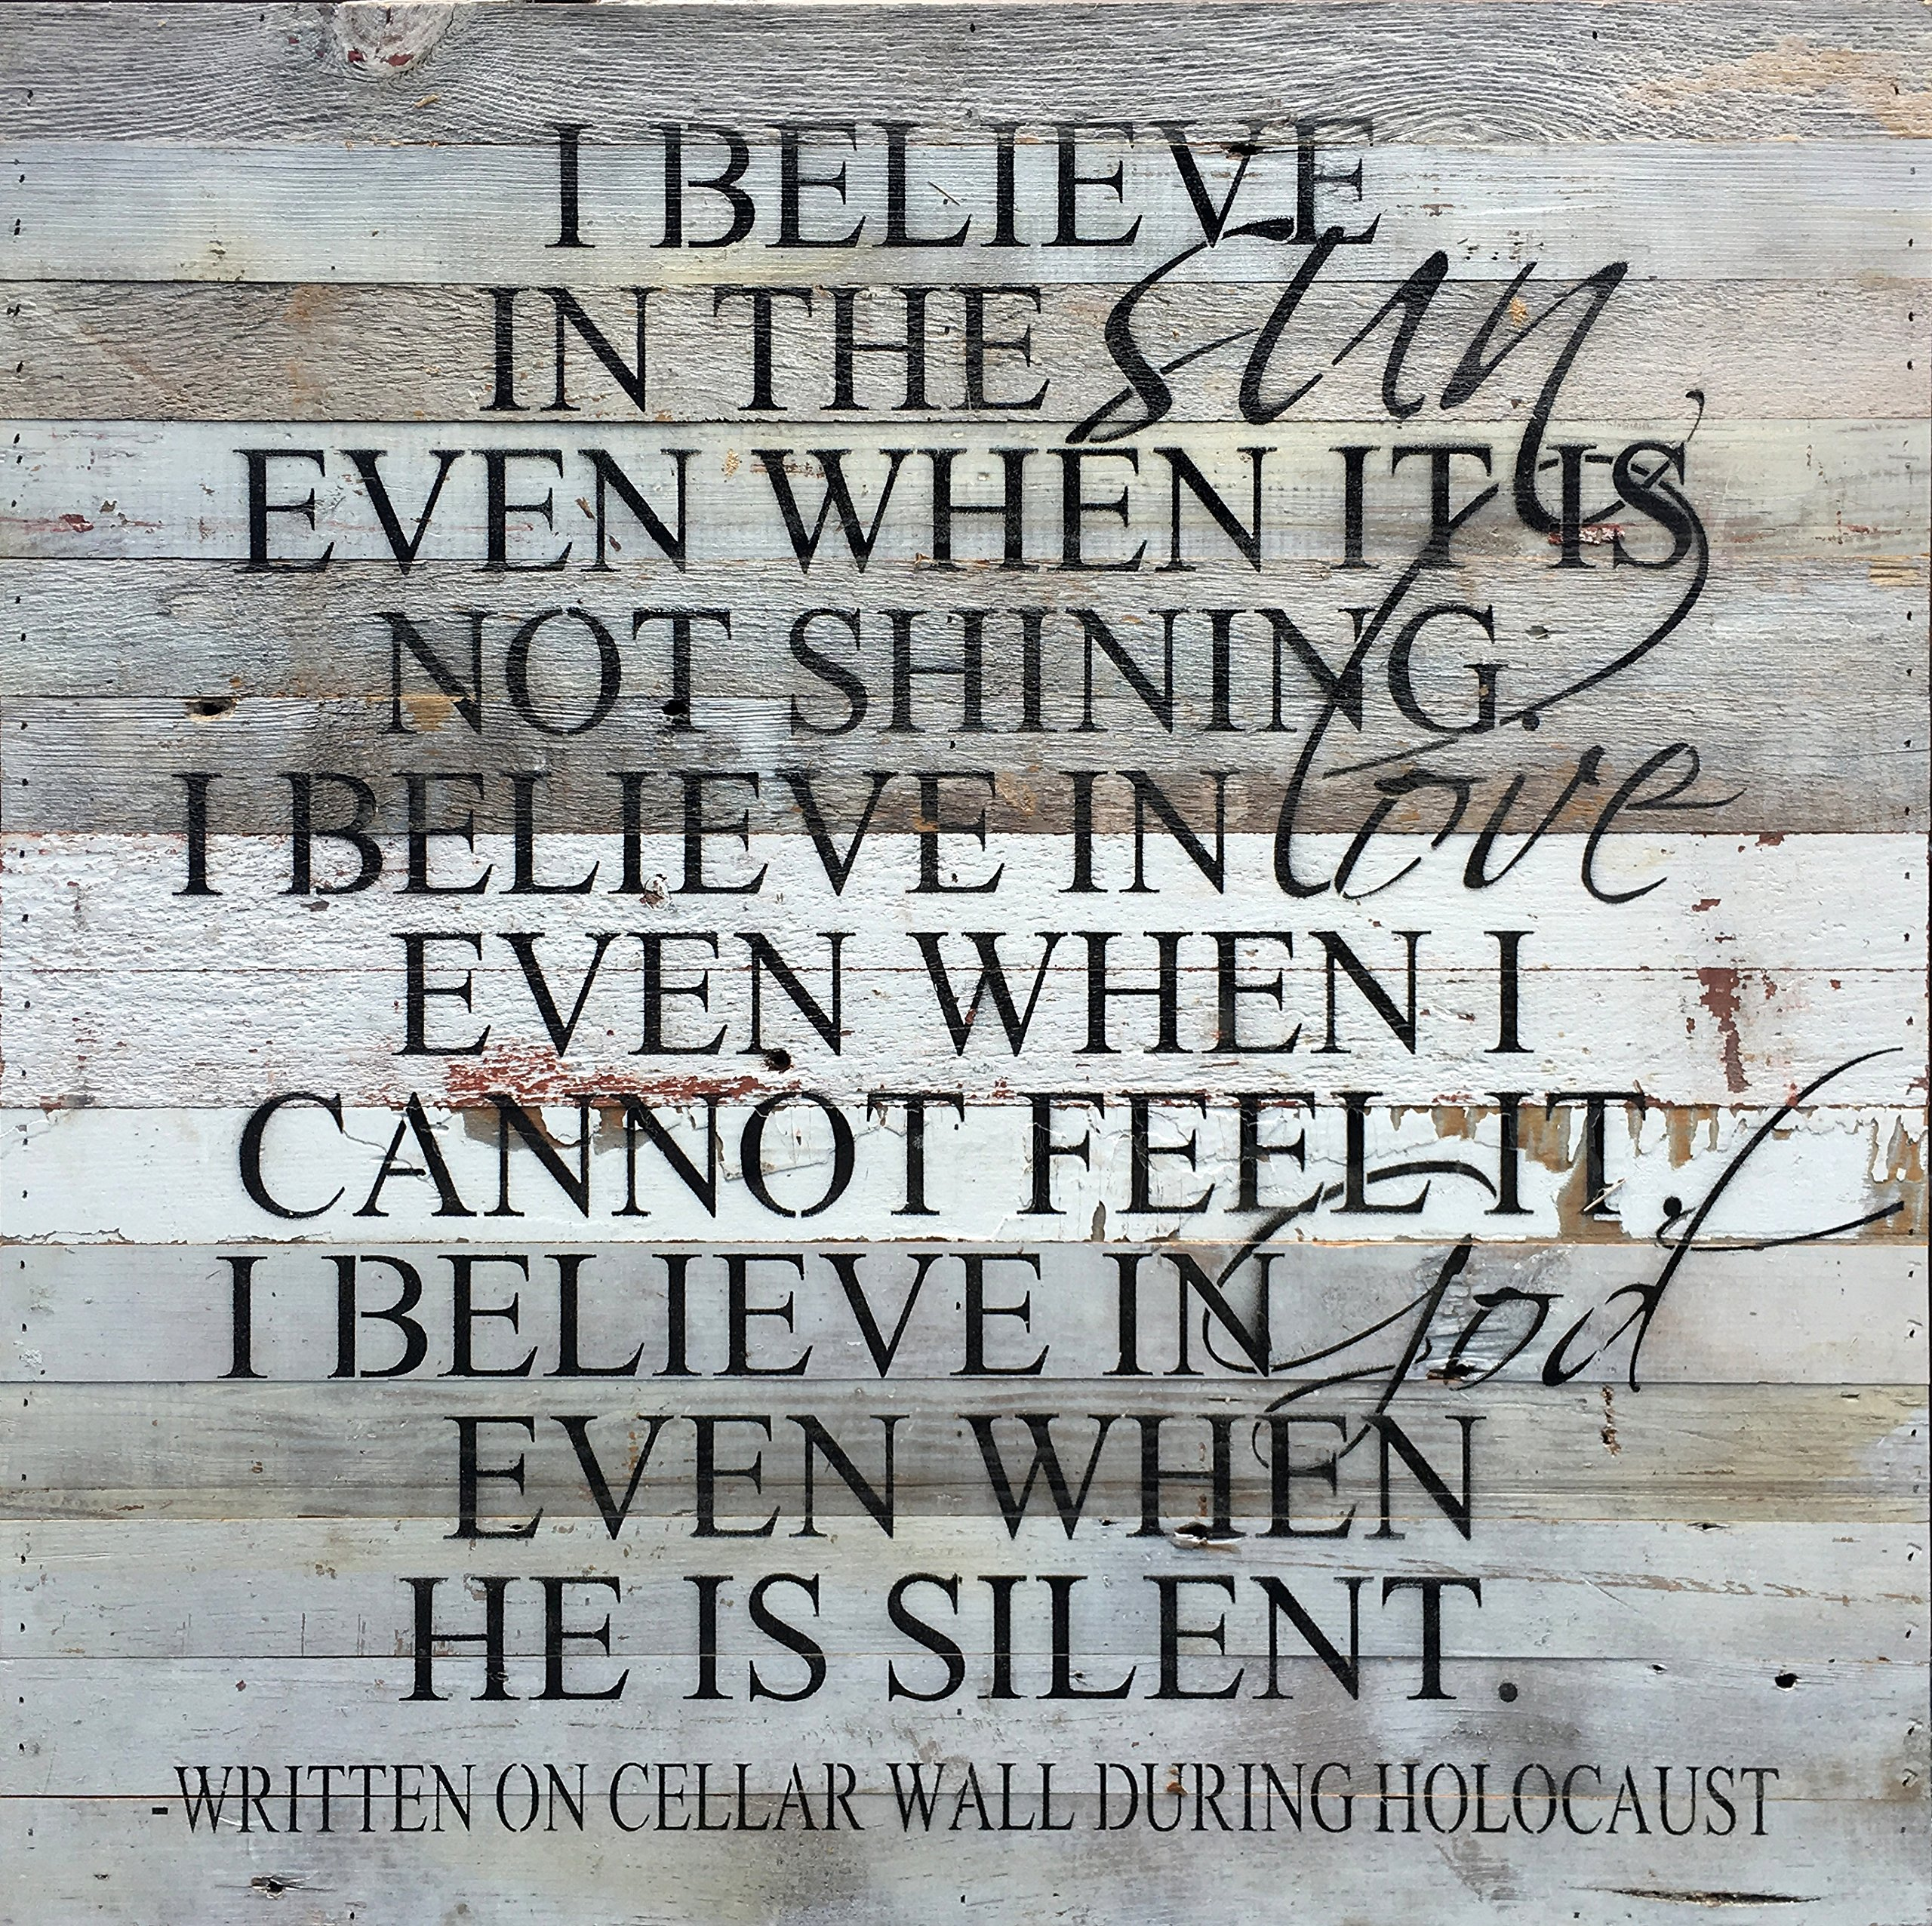 I Believe... Words of Inspiration Written on a Cellar Wall During Holocaust (Black Text on White) Oversized Reclaimed Repurposed Wood Wall Decor Art - 28-in x 28-in